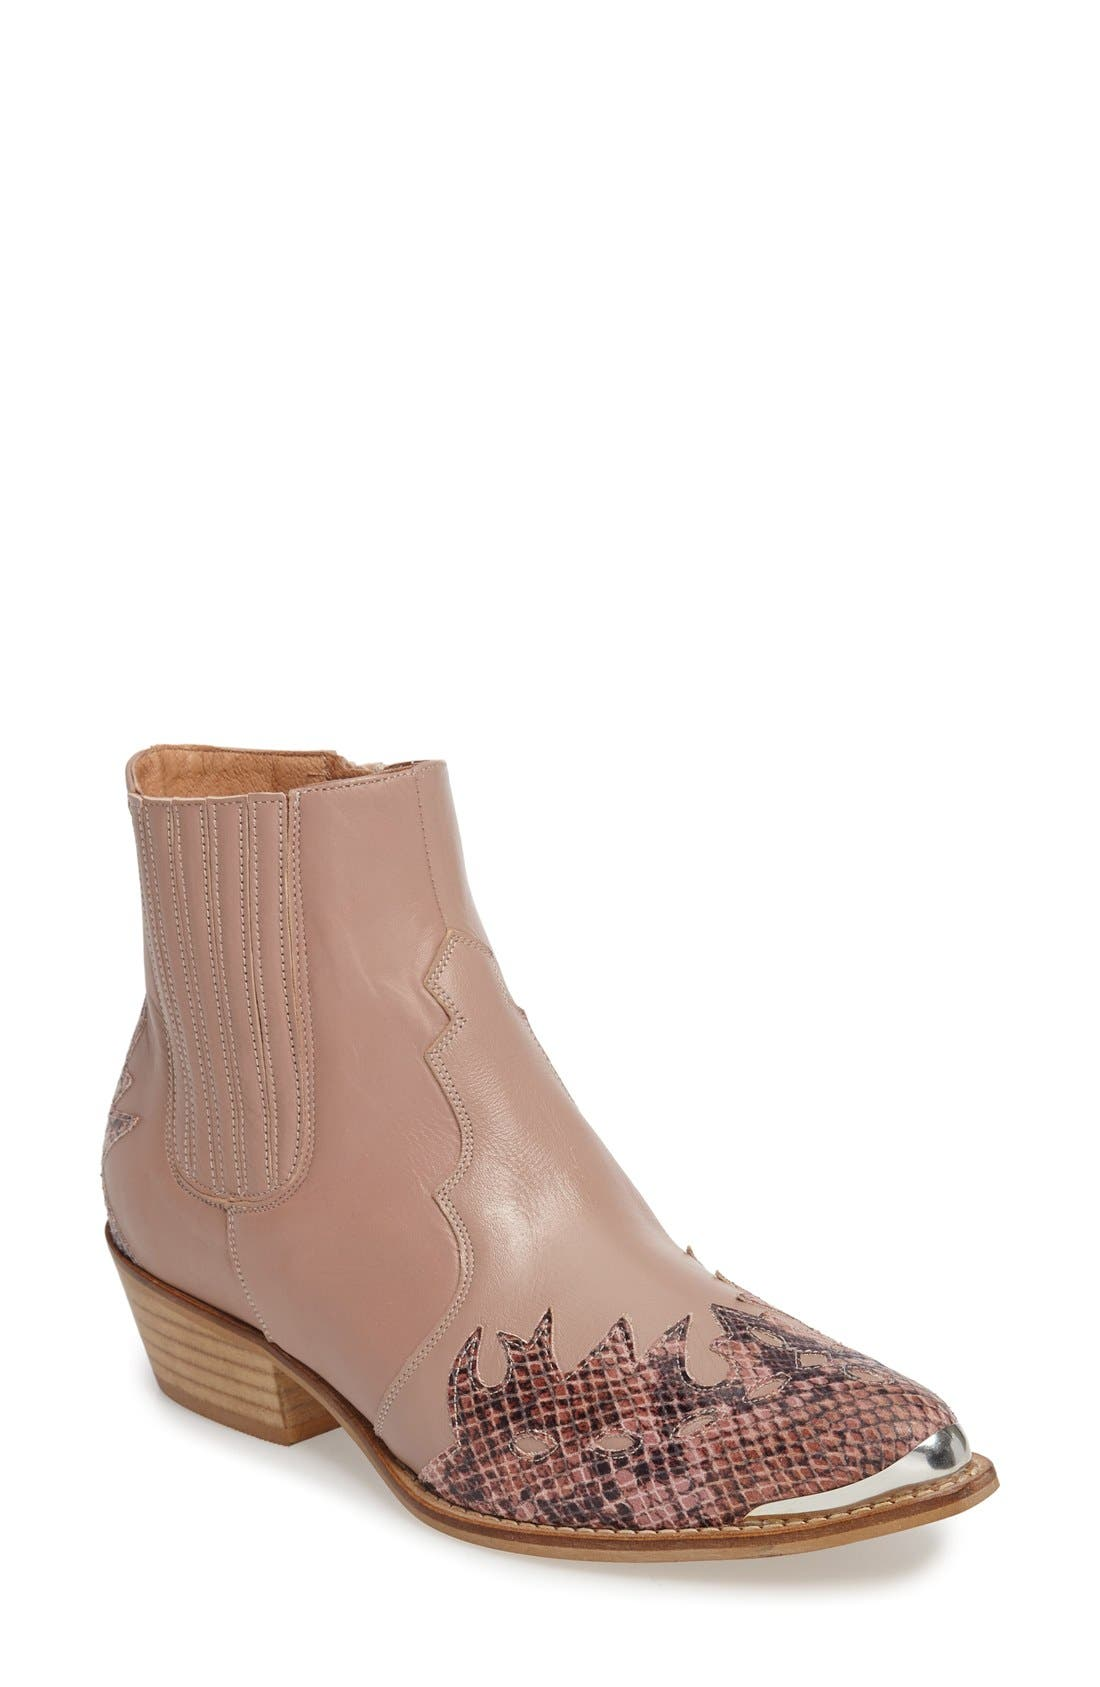 TOPSHOP 'Arson' Western Ankle Boots